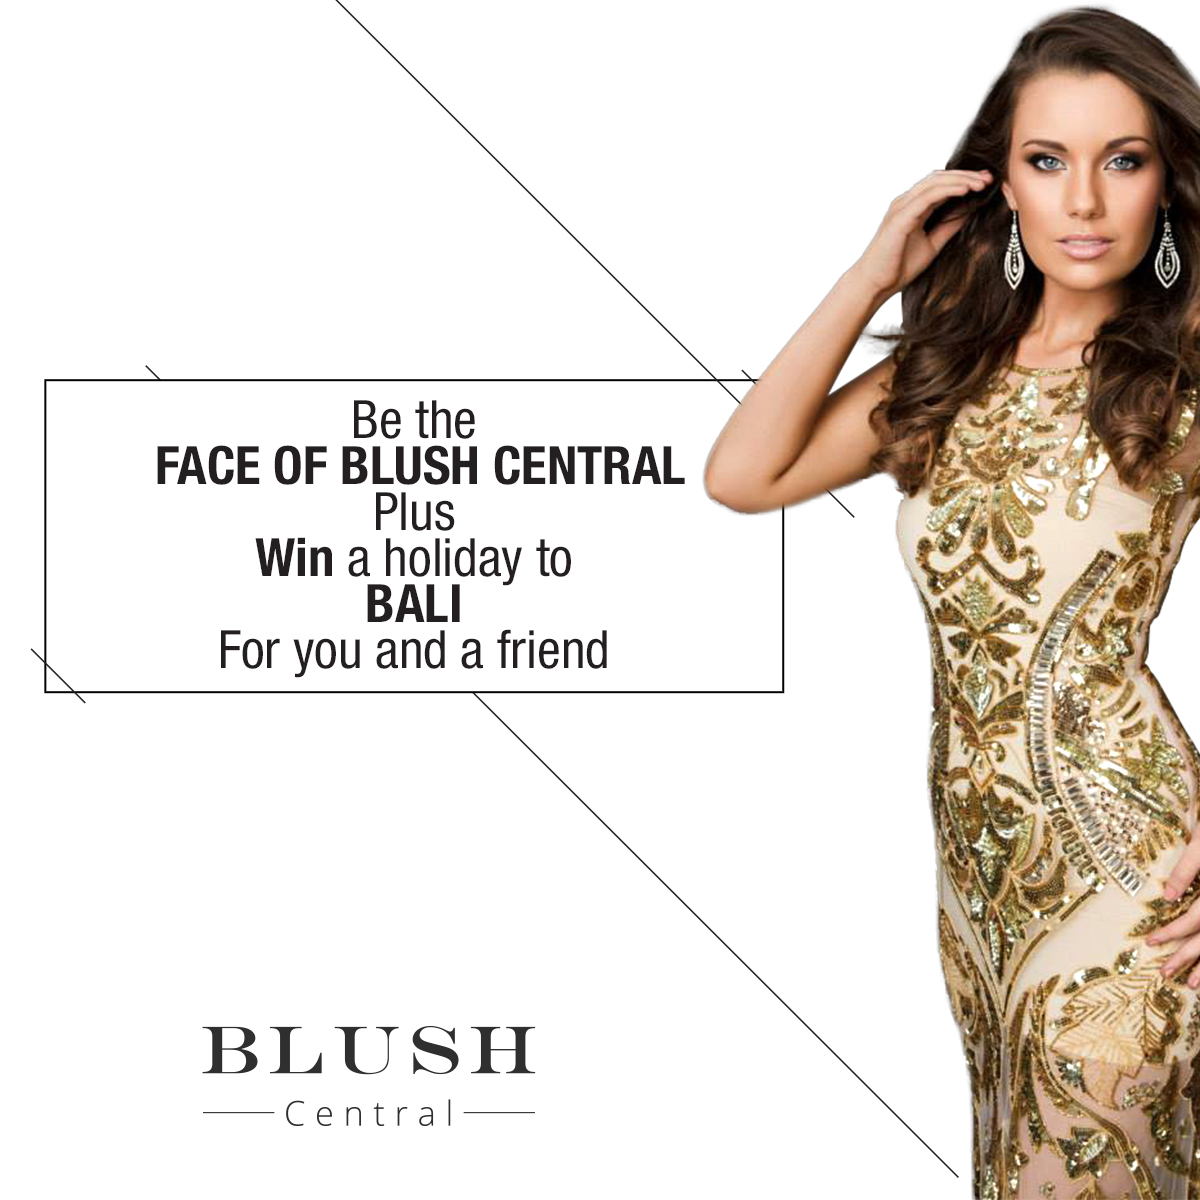 FACE OF BLUSH CENTRAL COMPETITION Entry details and terms and conditions